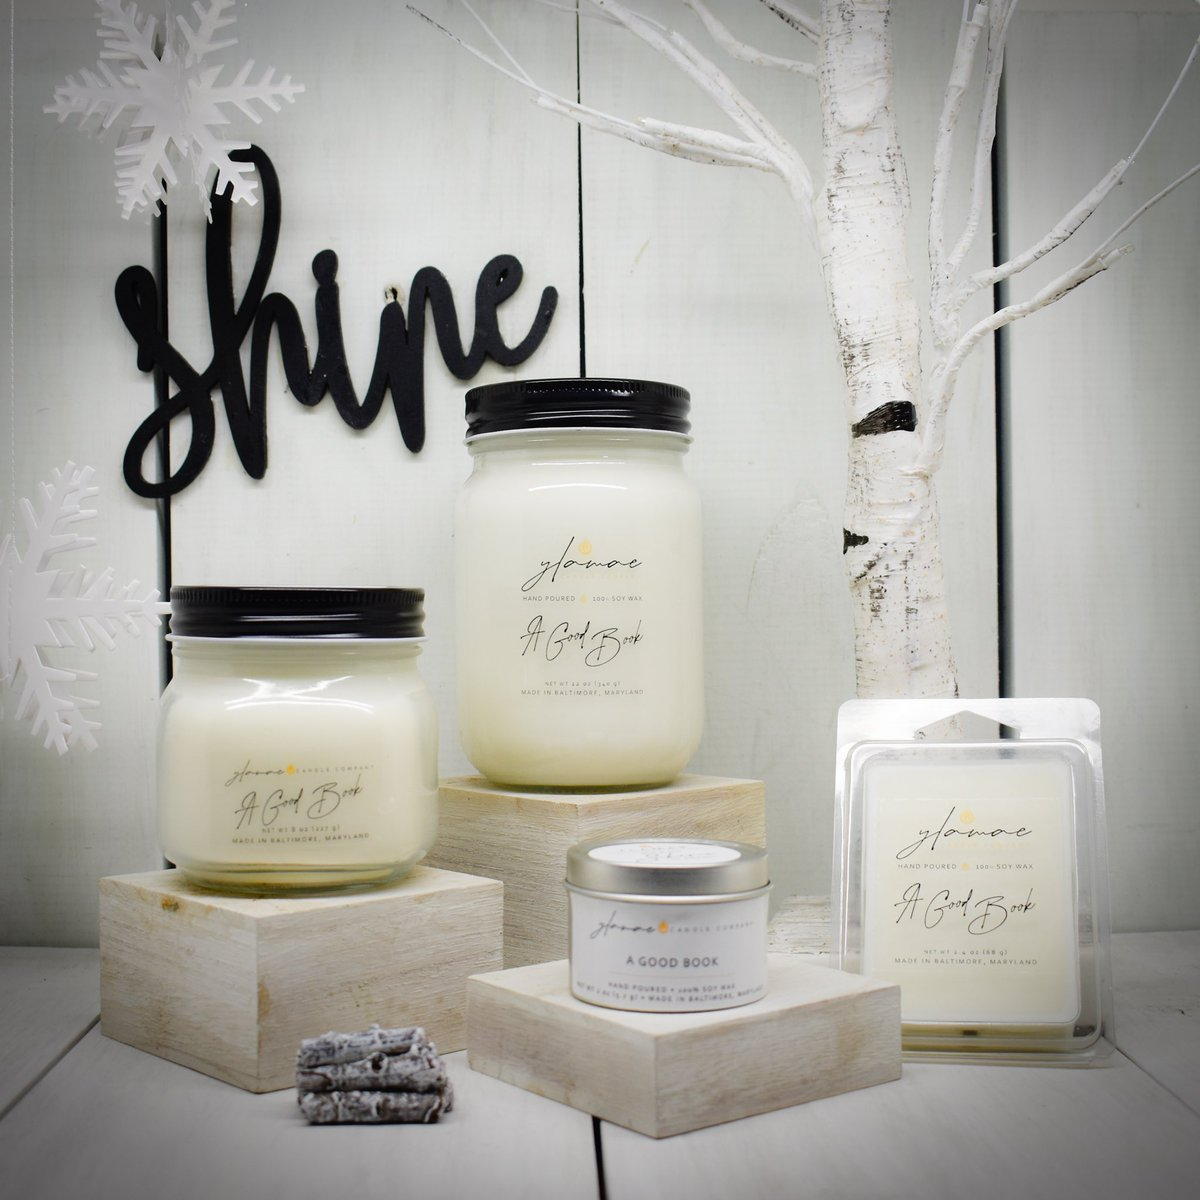 I'm launching the Winter Line today! ❄️ #ylamae #shine #candle #candles #candlelover #candlemaking #candlebusiness #homedecor #homemadecandles #decor #wax #waxmelts #puresoycandles #puresoywax #soywaxcandles #soywaxcandle #soywaxmelts #handpoured #handmade #custom #scent